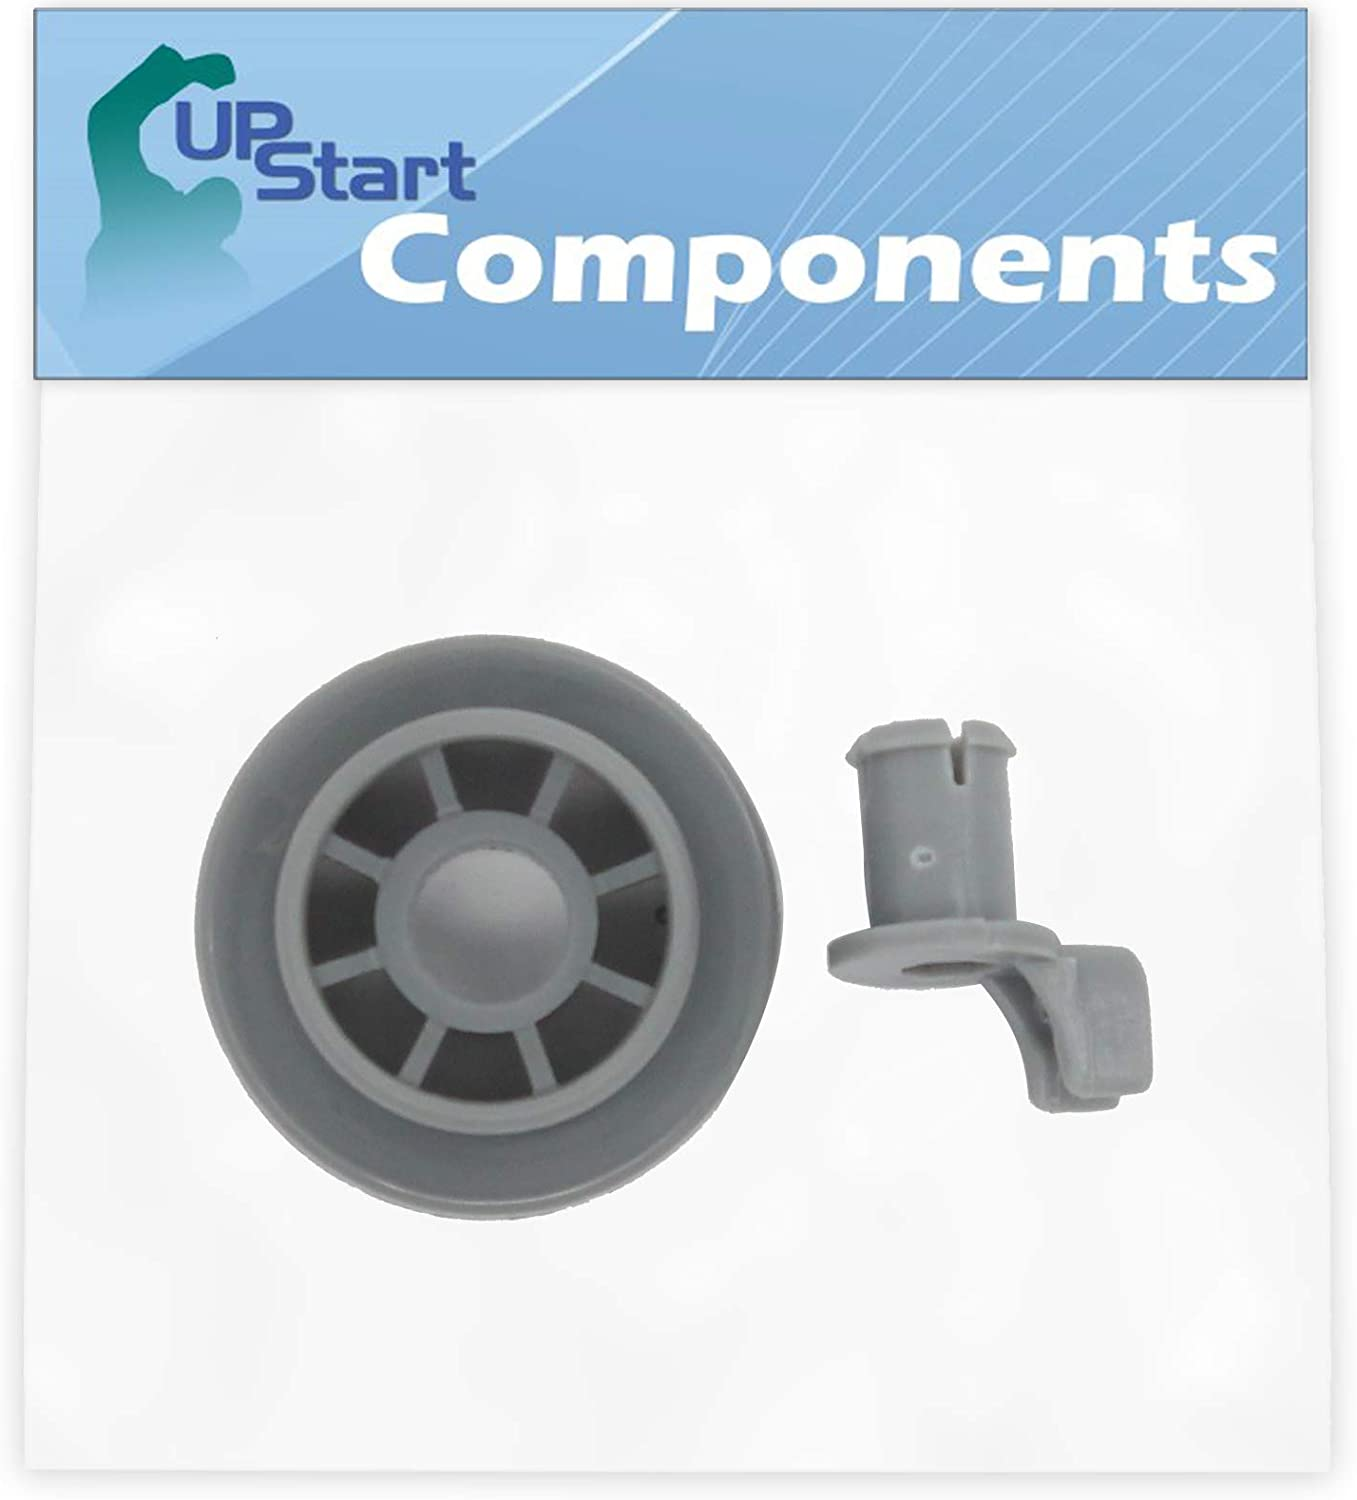 165314 Dishwasher Lower Dishrack Wheel Replacement for Bosch SHE4AM12UC/01 Dishwasher - Compatible with 00165314 Lower Rack Roller - UpStart Components Brand